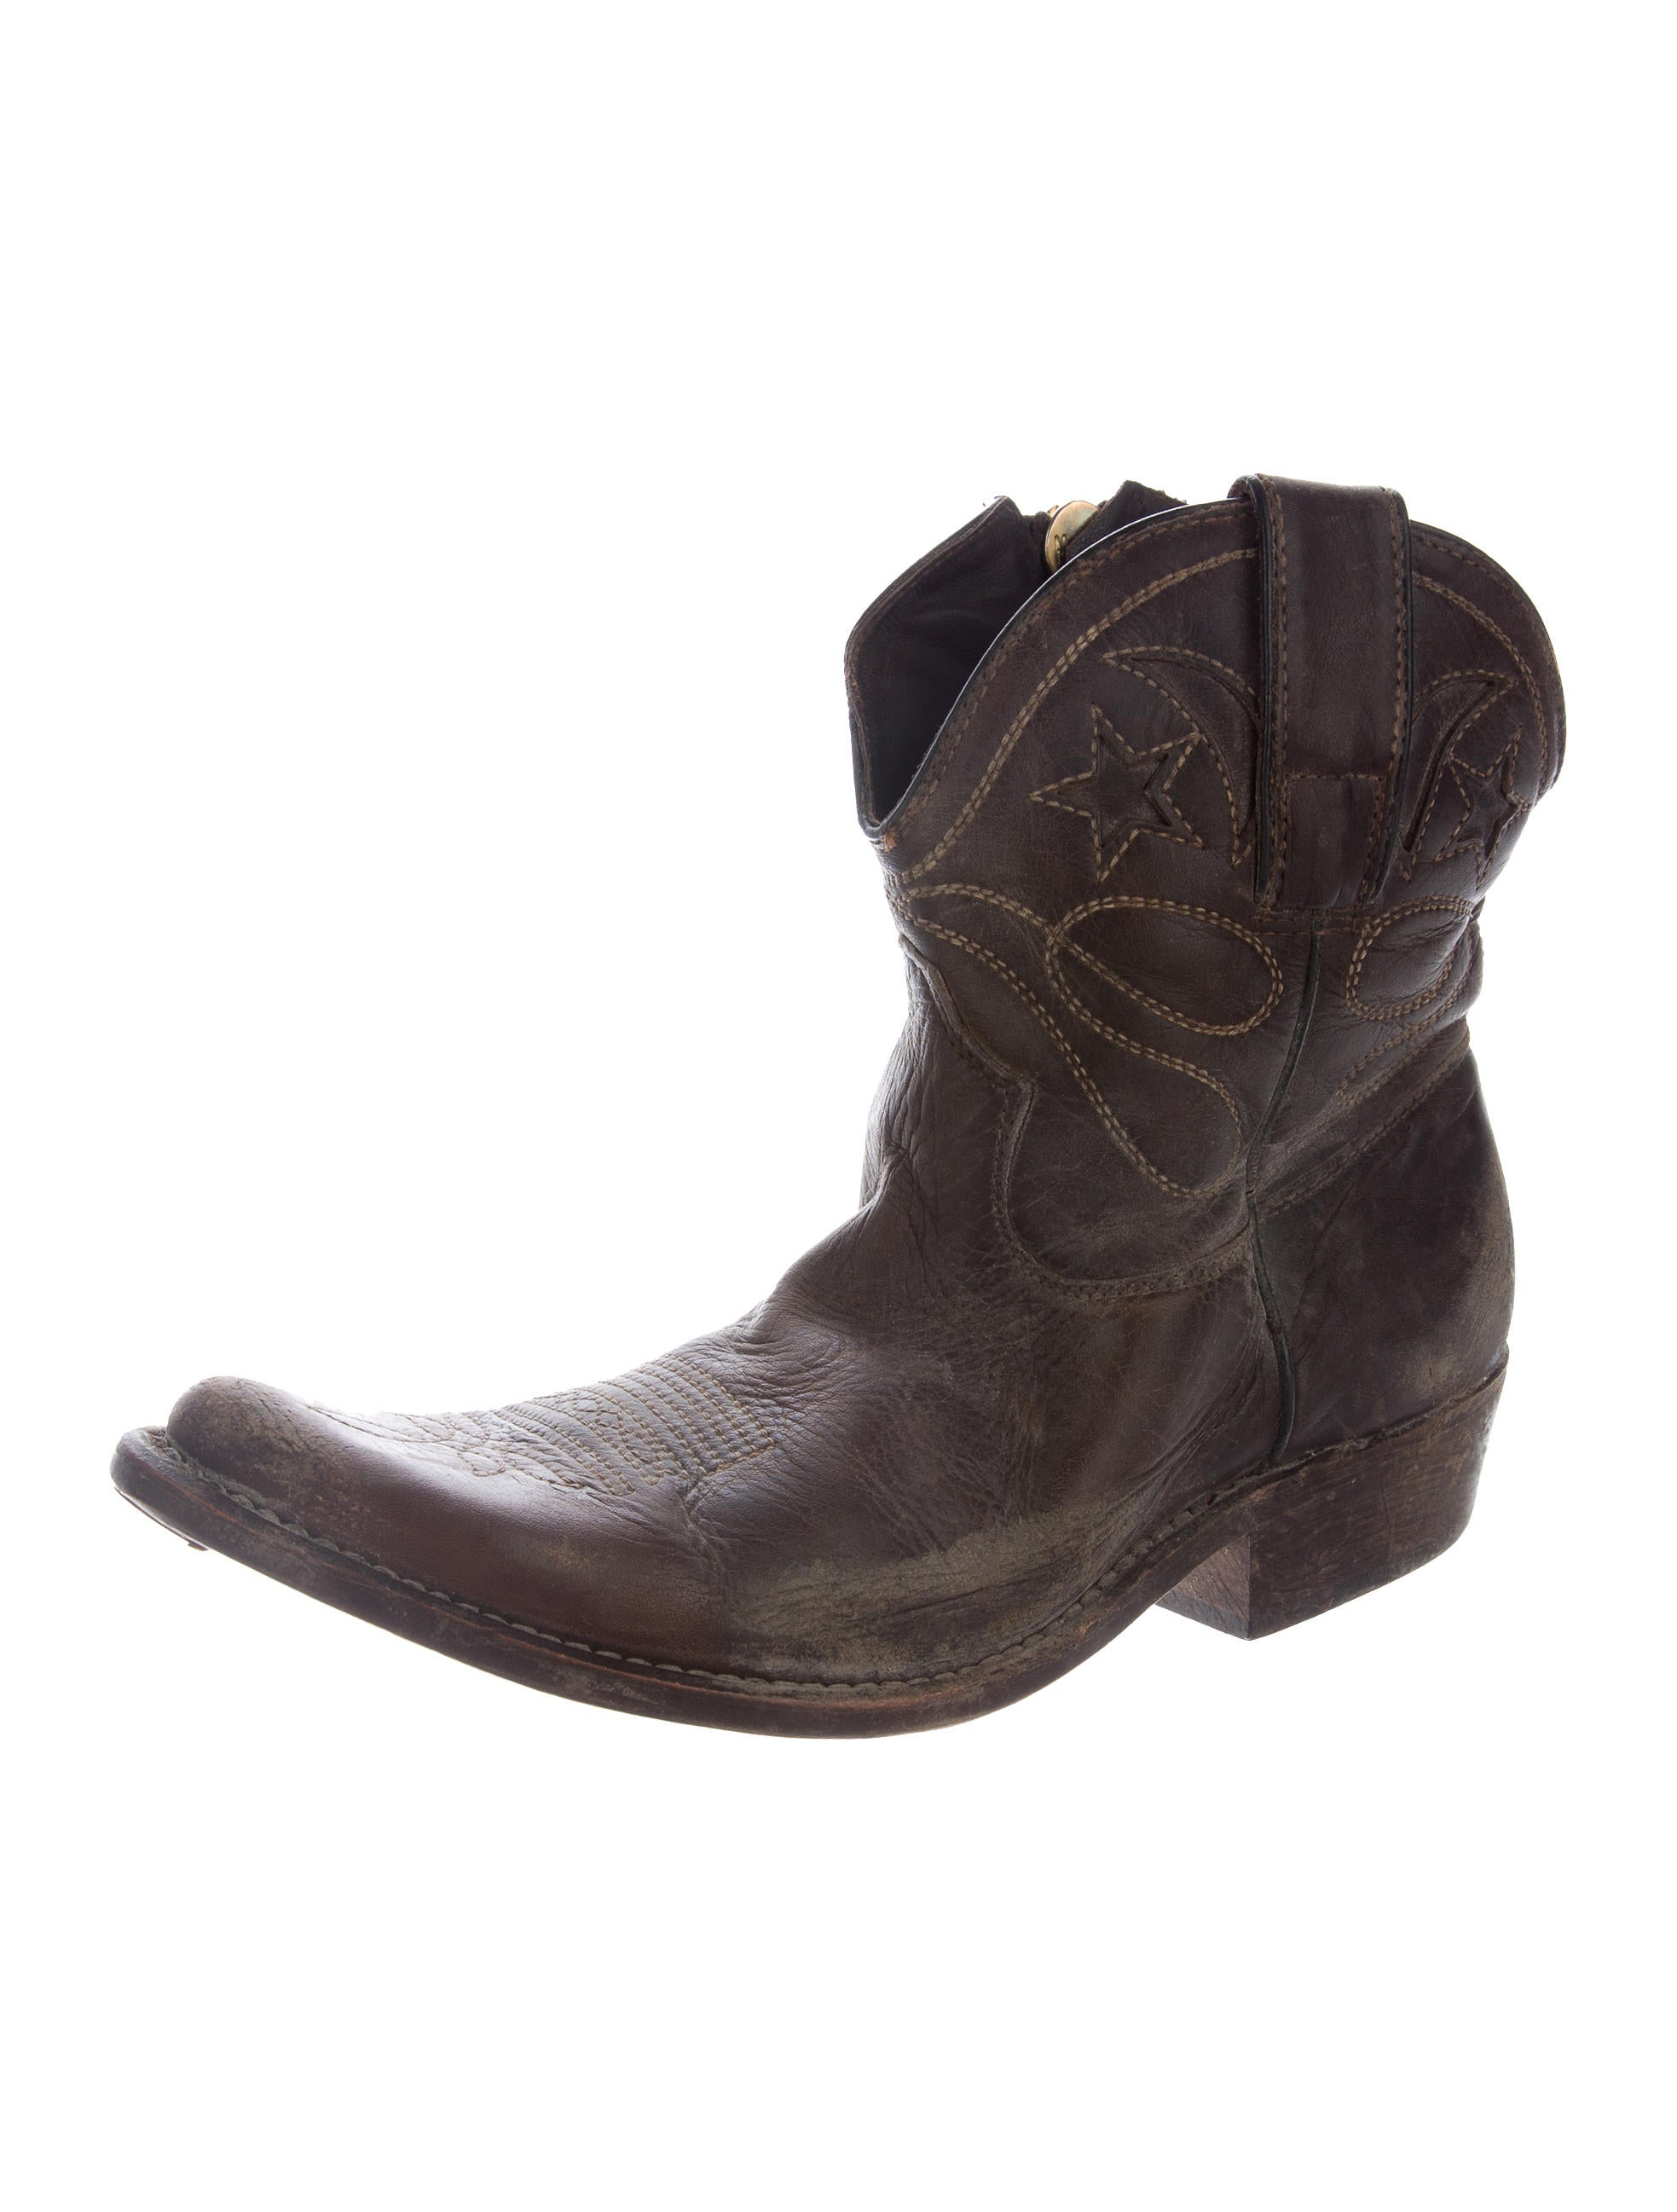 golden goose leather cowboy ankle boots shoes wg524110